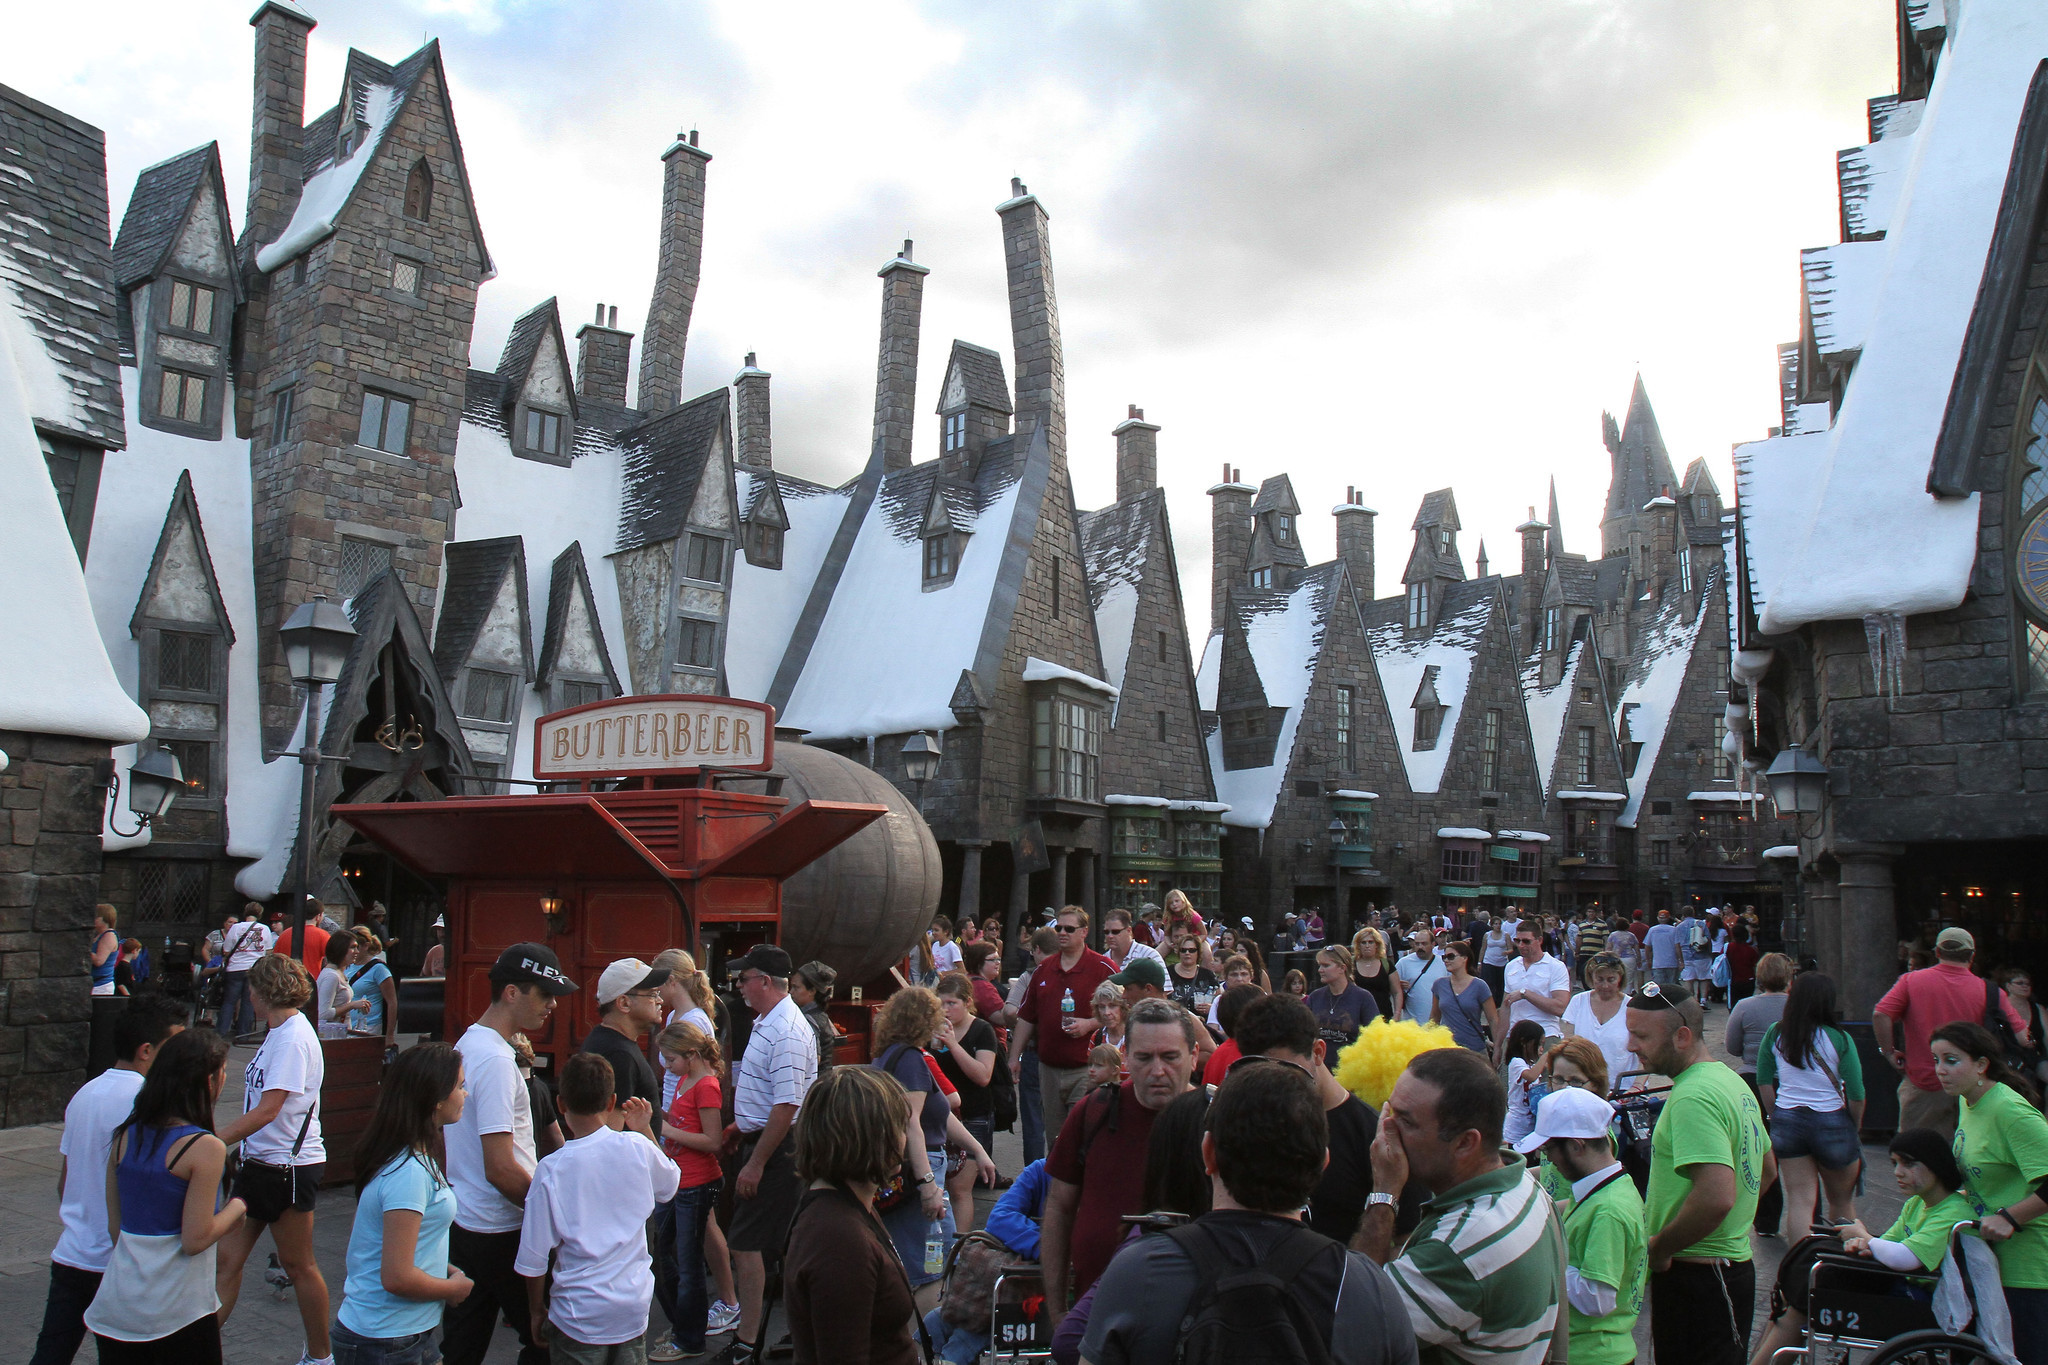 Tourists and Harry Potter enthusiasts jam Hogsmeade Village in the Wizarding World of Harry Potter at Universal's Island of Adventures in Orlando, Fla. Tuesday, December 6, 2011.